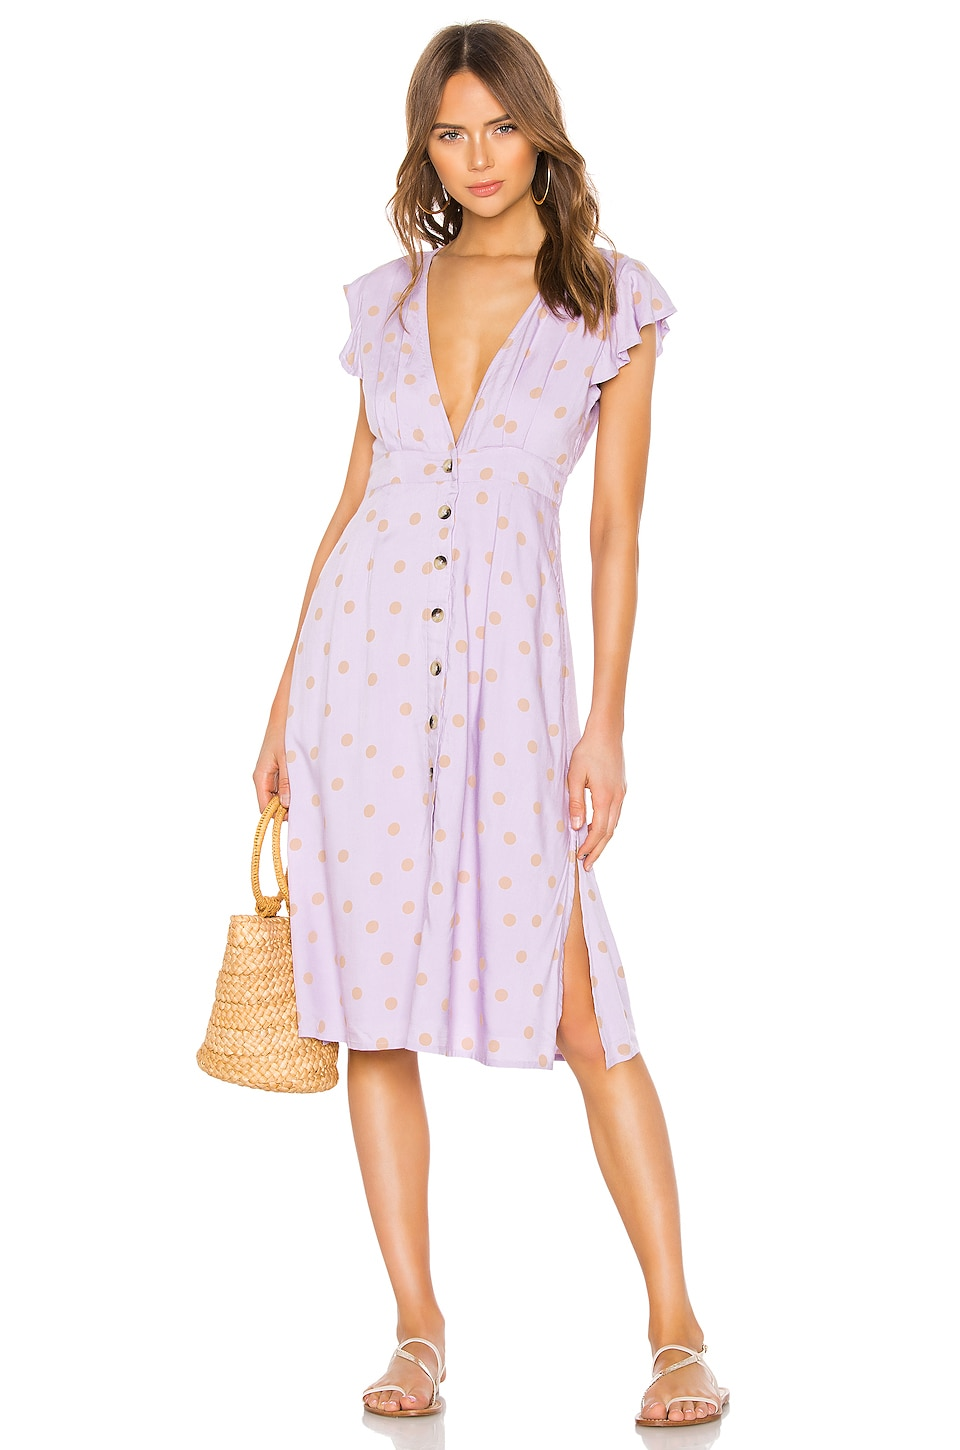 X REVOLVE Jordan Dress             L*SPACE                                                                                                                                         Sale price:                                                                       CA$ 94.58                                                                  Previous price:                                                                       CA$ 187.80 2